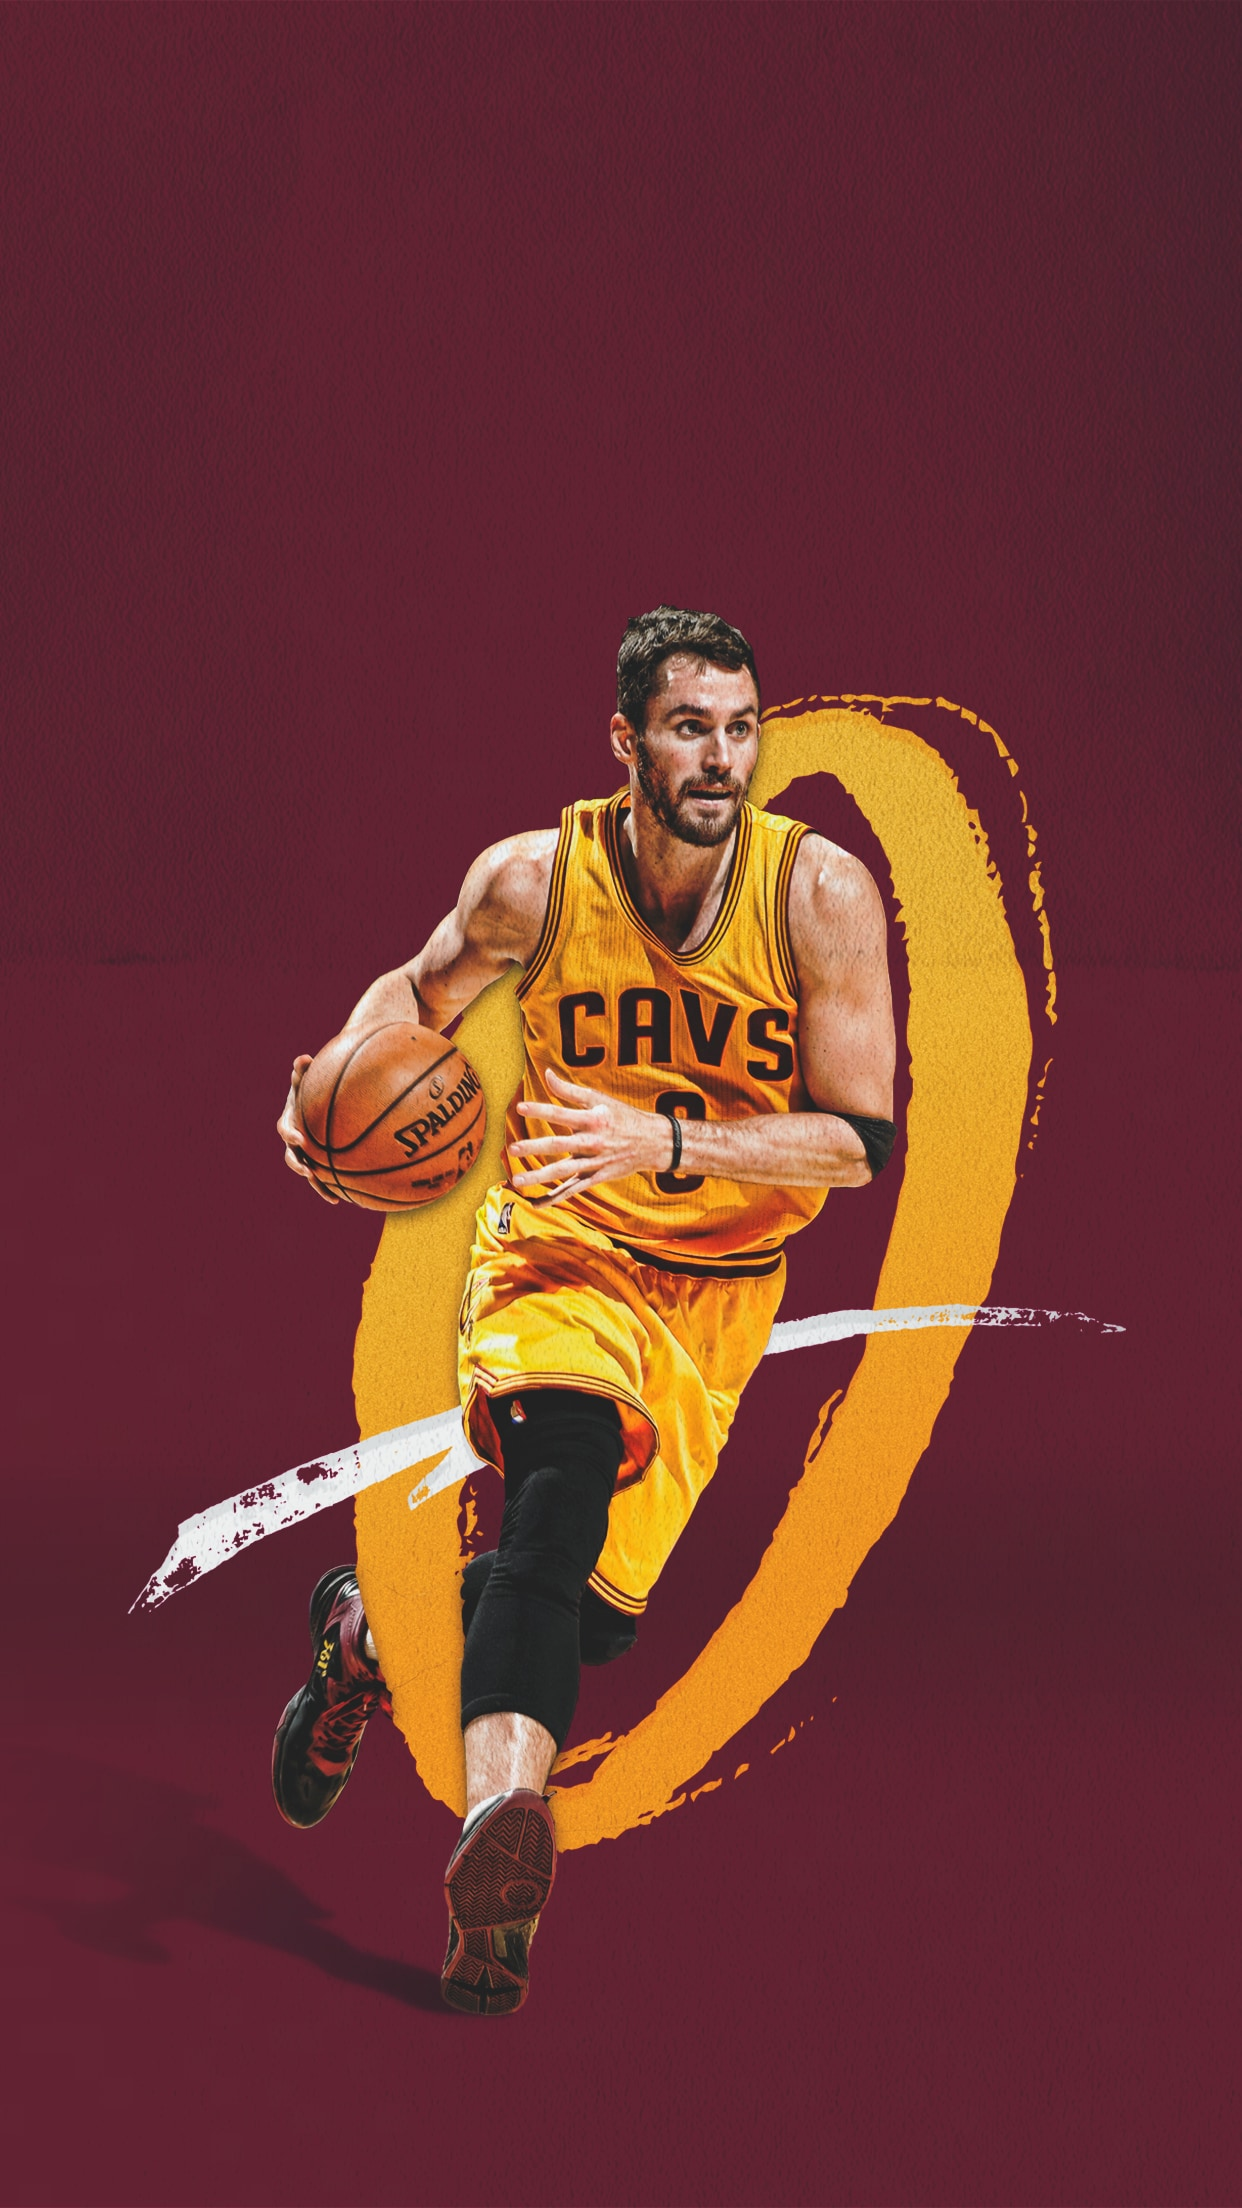 Kevin Love Wallpaper Hd : Wallpapers cleveland cavaliers